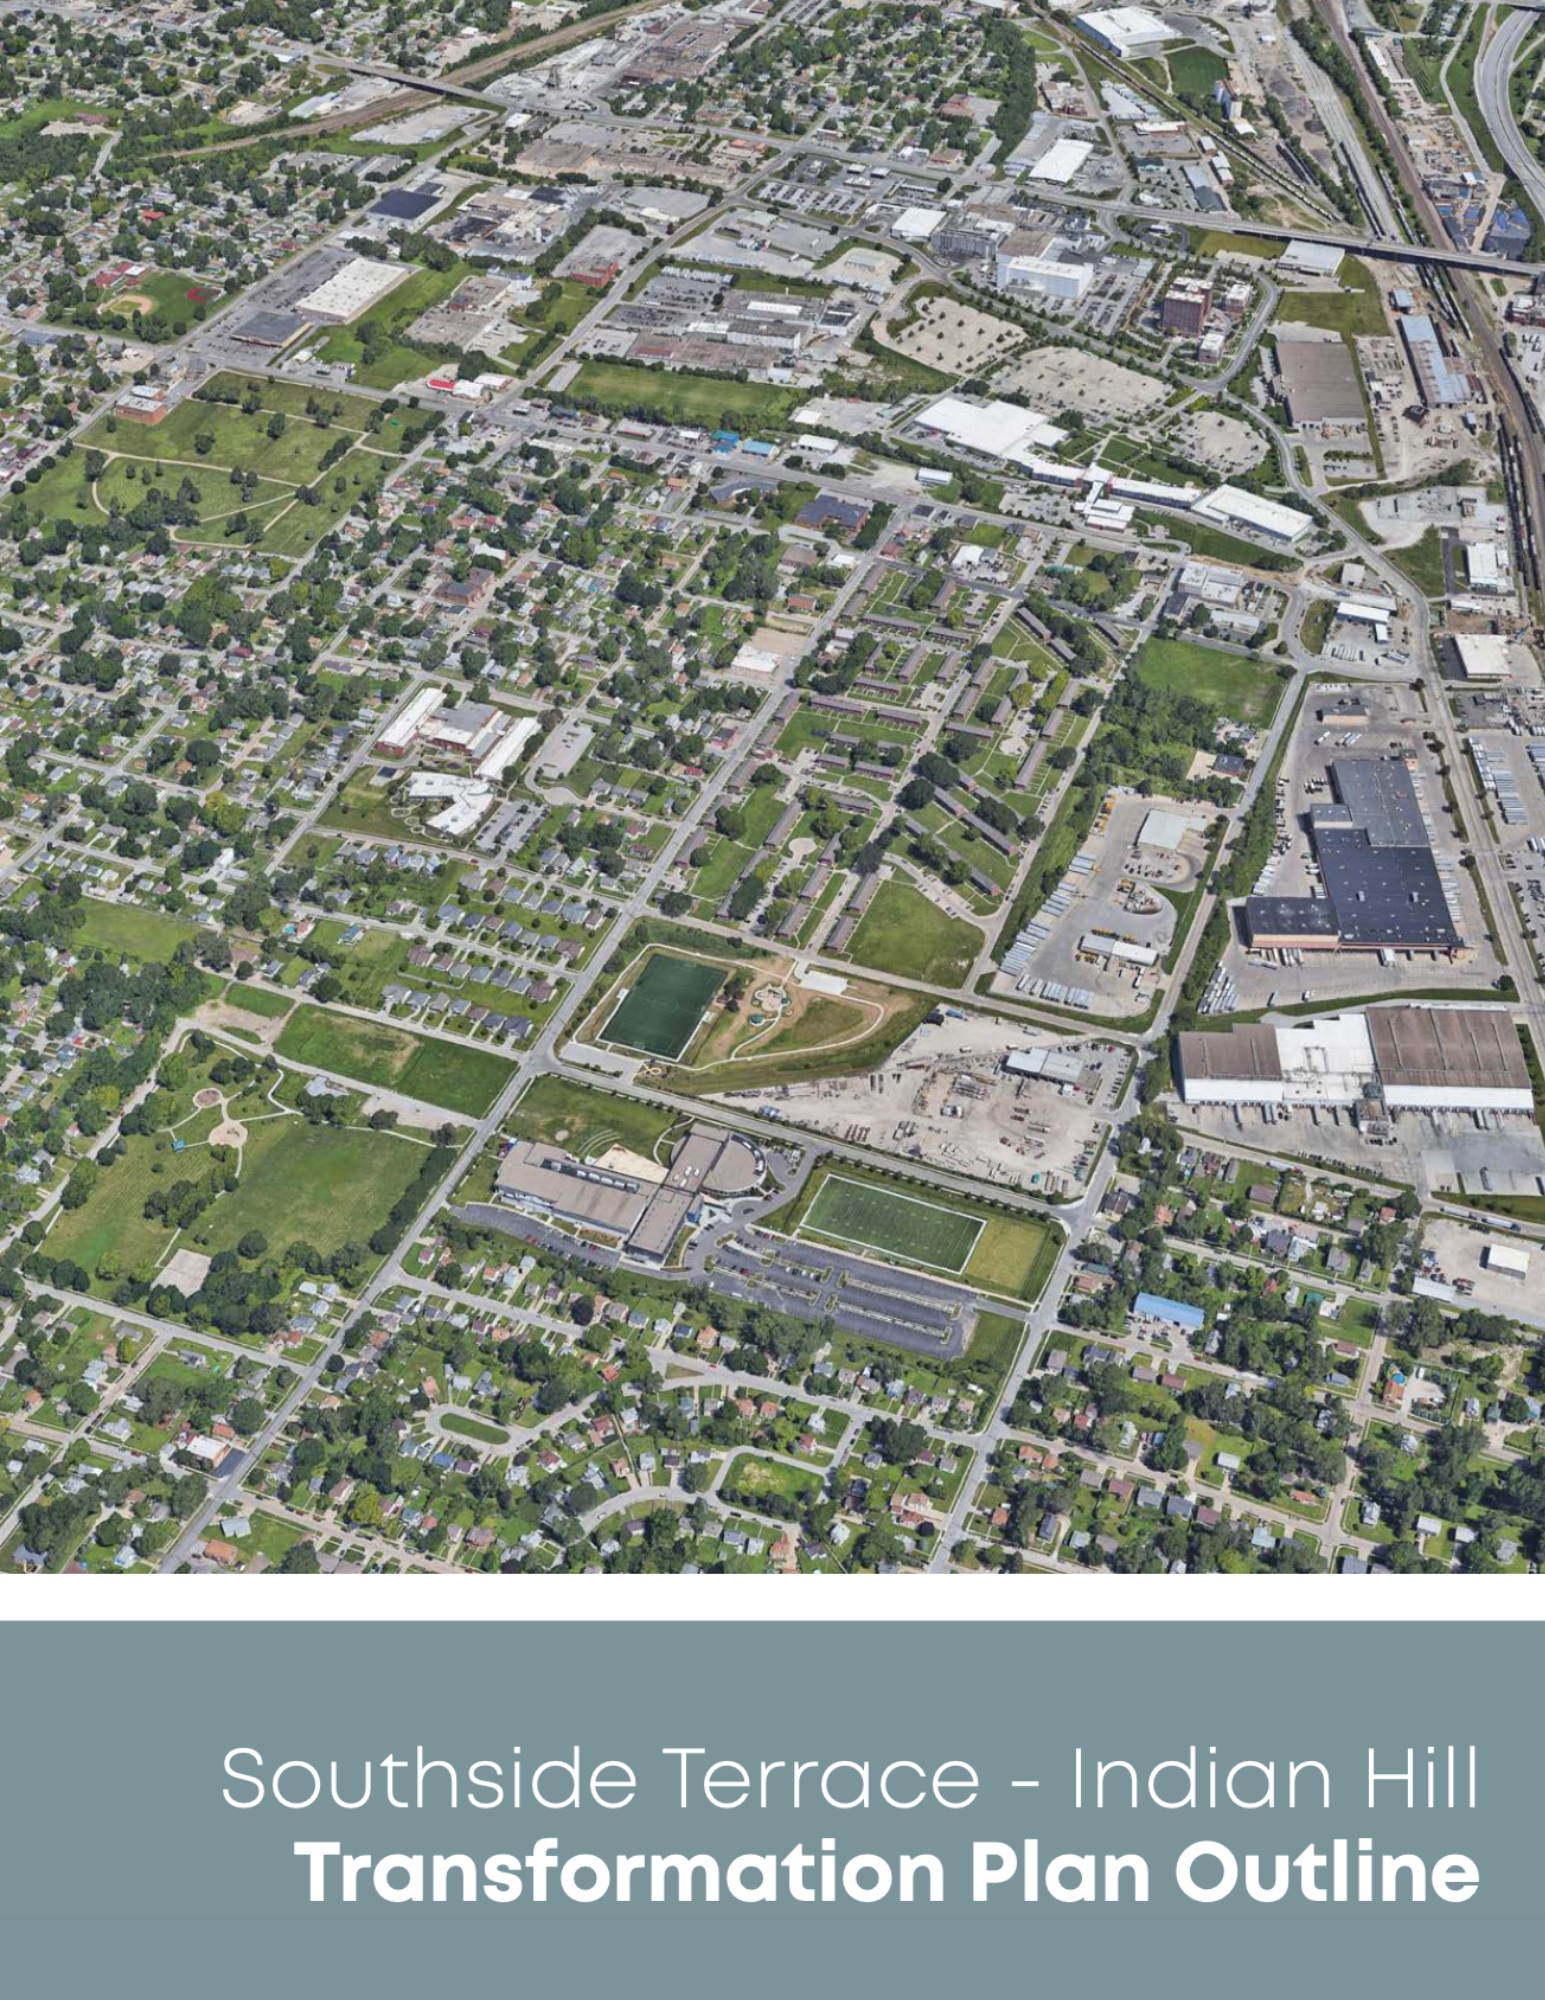 A rendering of Southside Terrace as seen from above